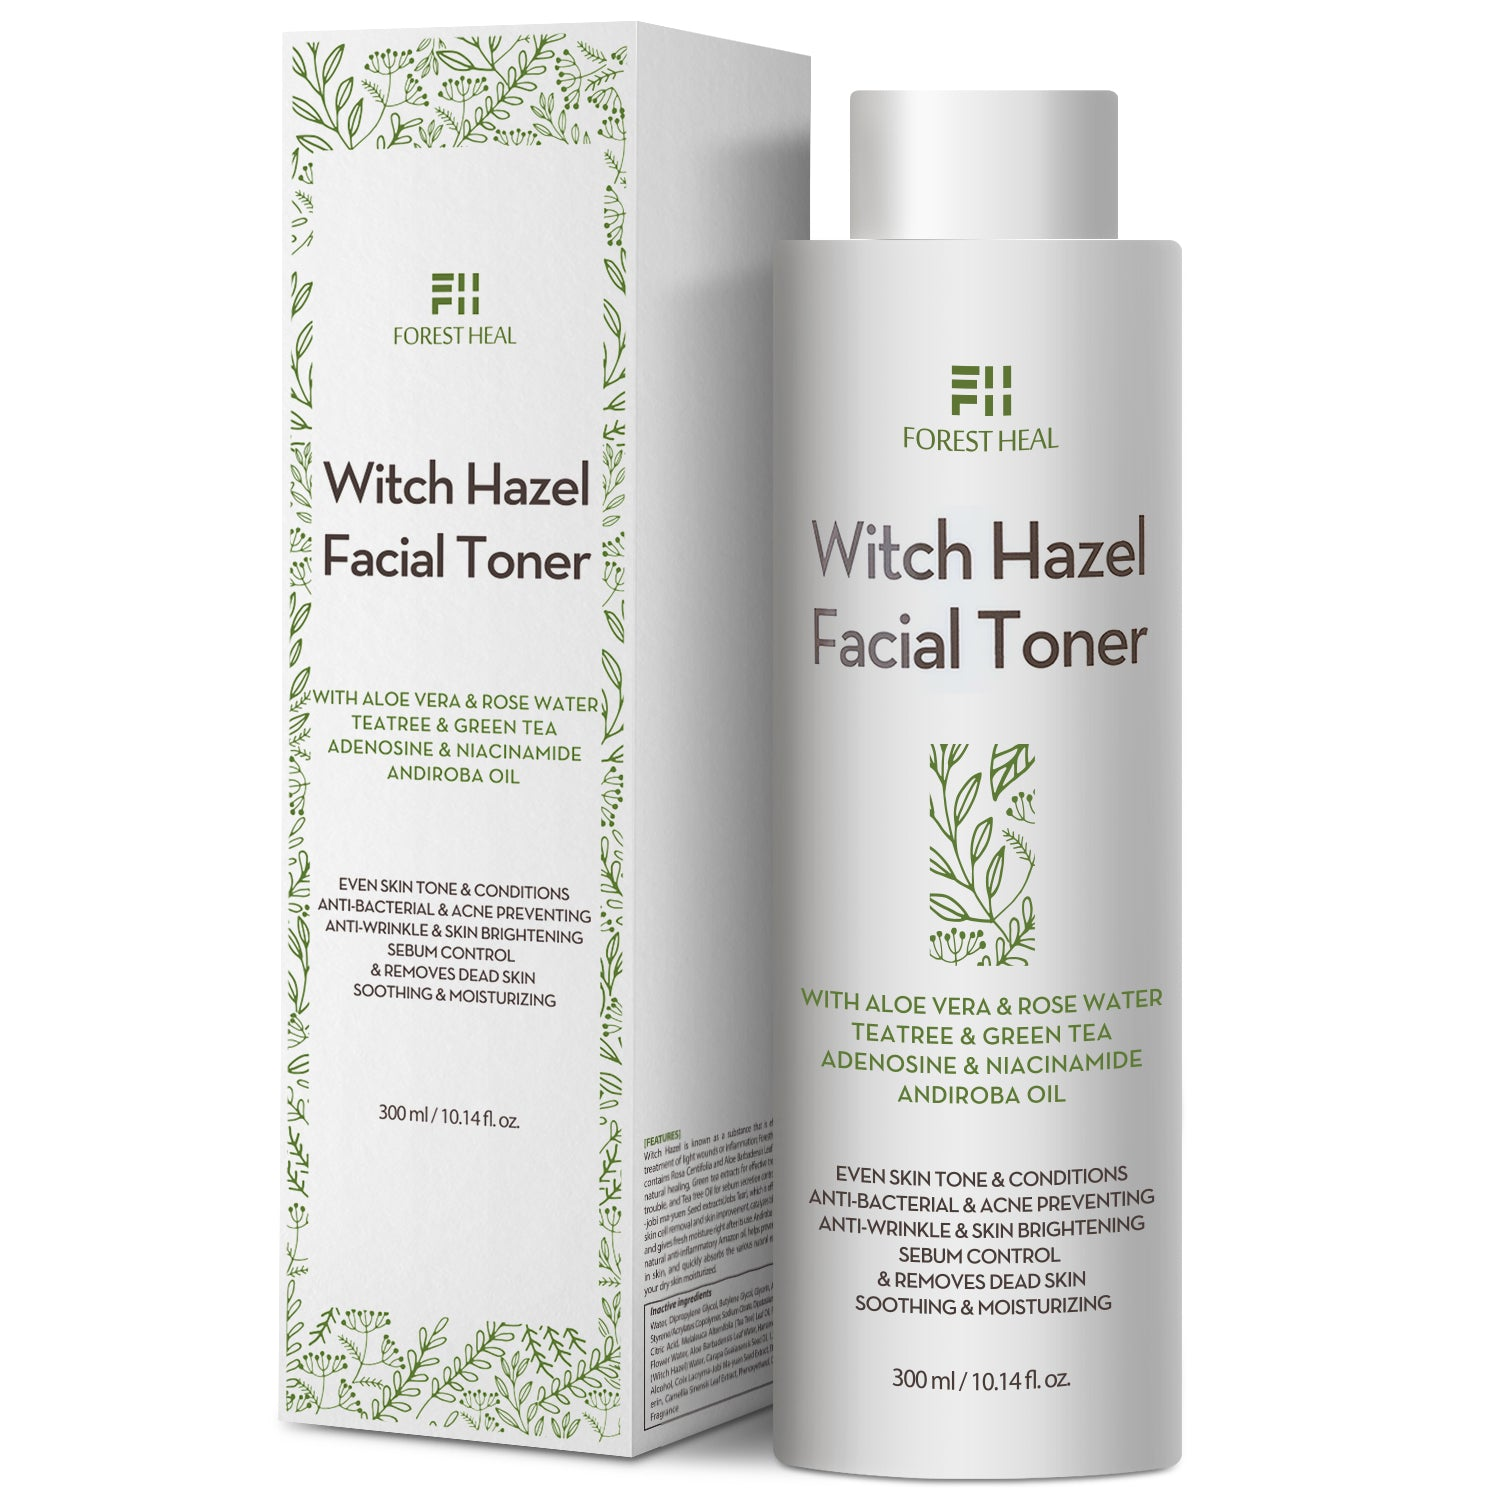 FORESTHEAL Natural Witch Hazel Face Toner